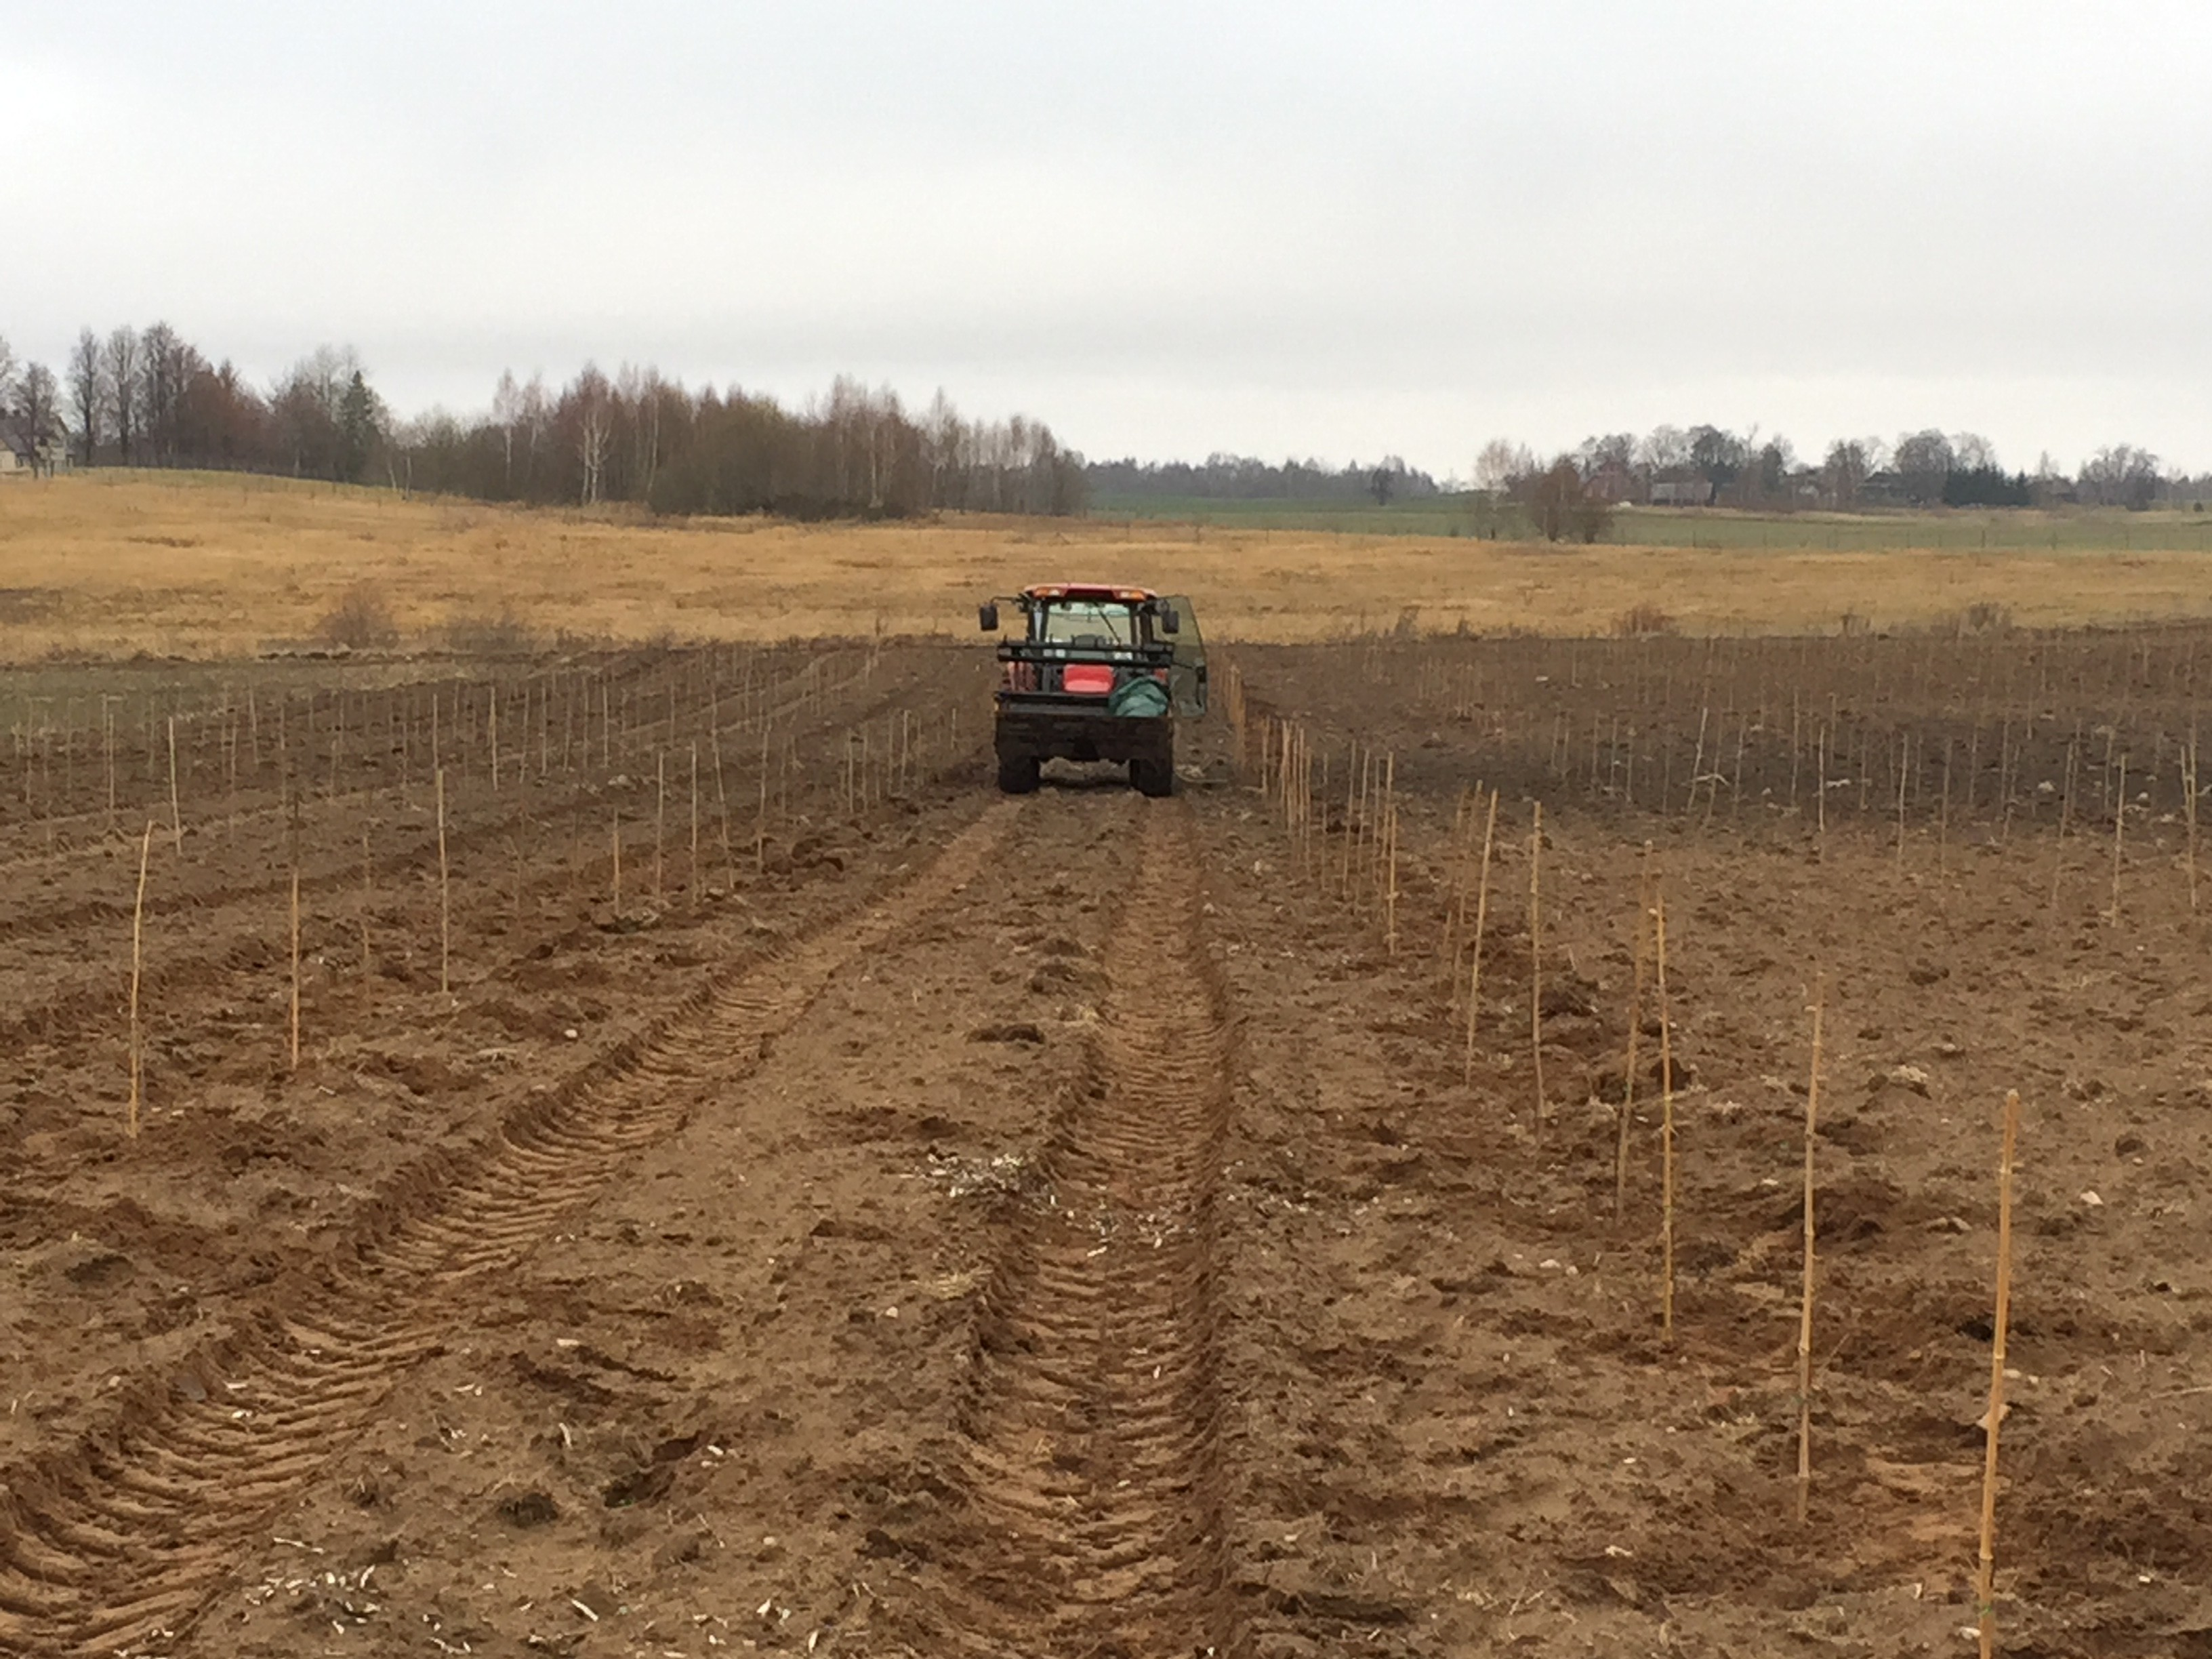 Preparing the fields for planting.